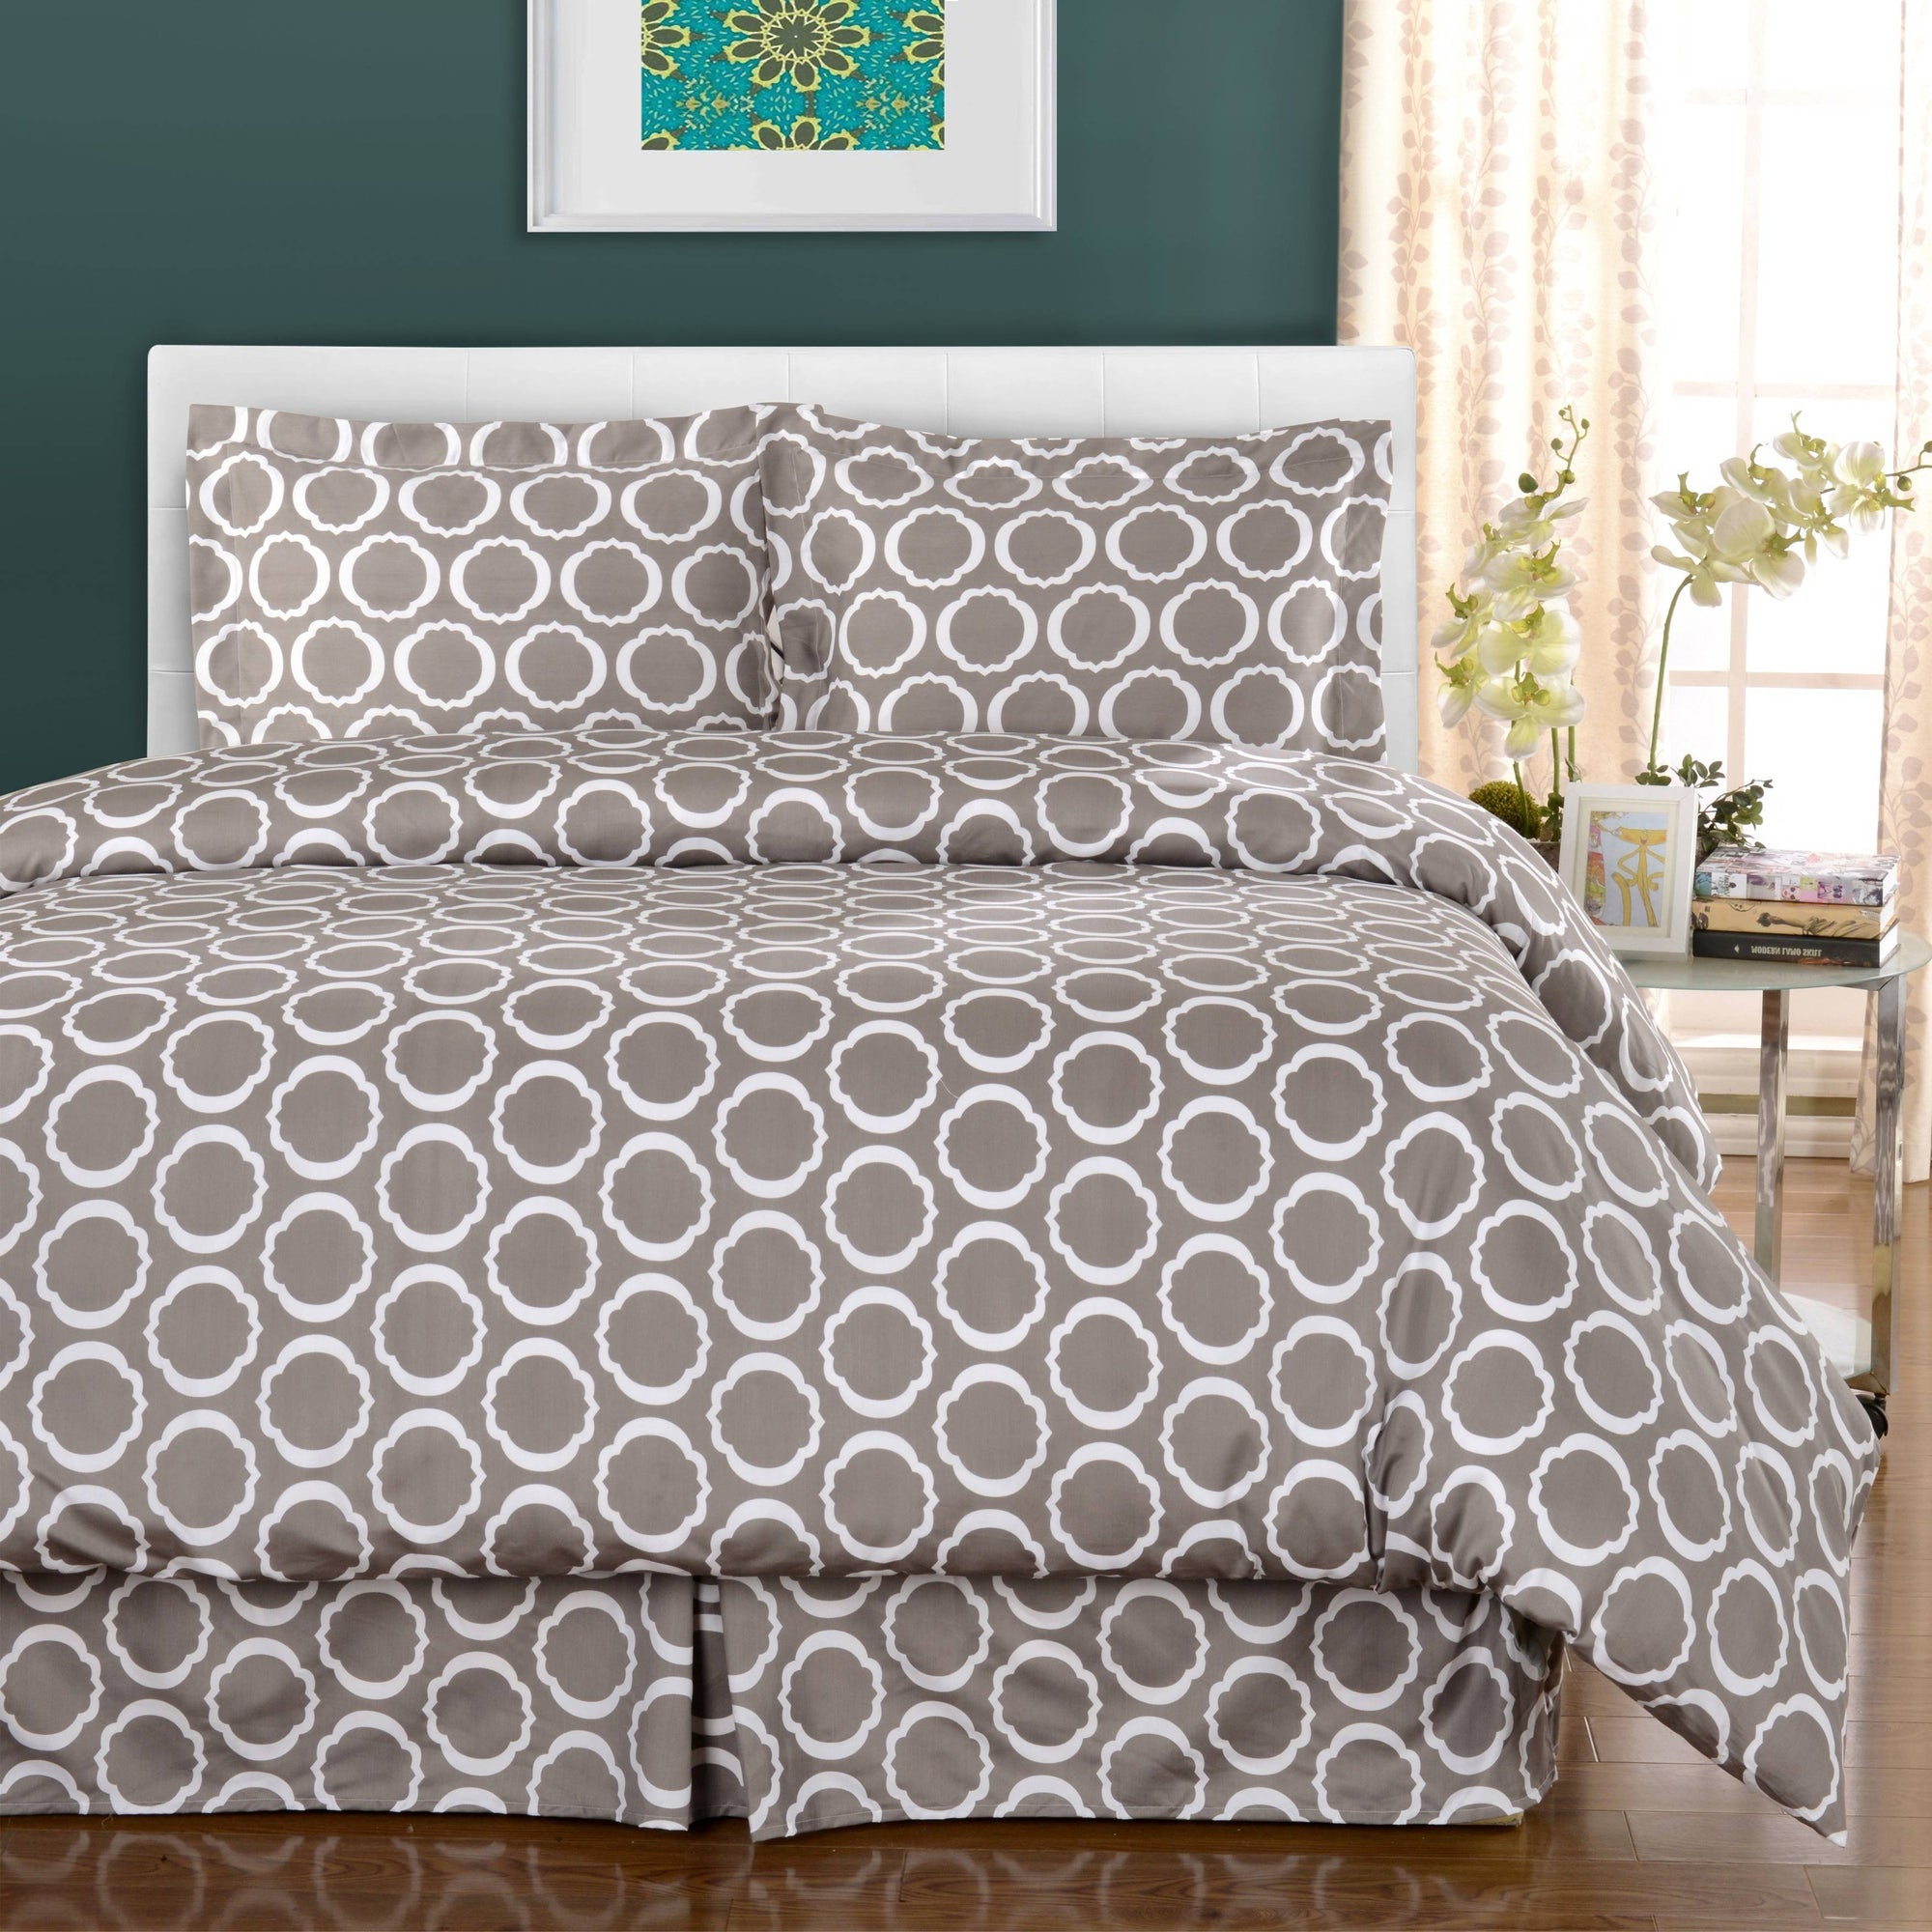 600 Thread Count Cotton Blend Scroll Park Duvet Cover Set